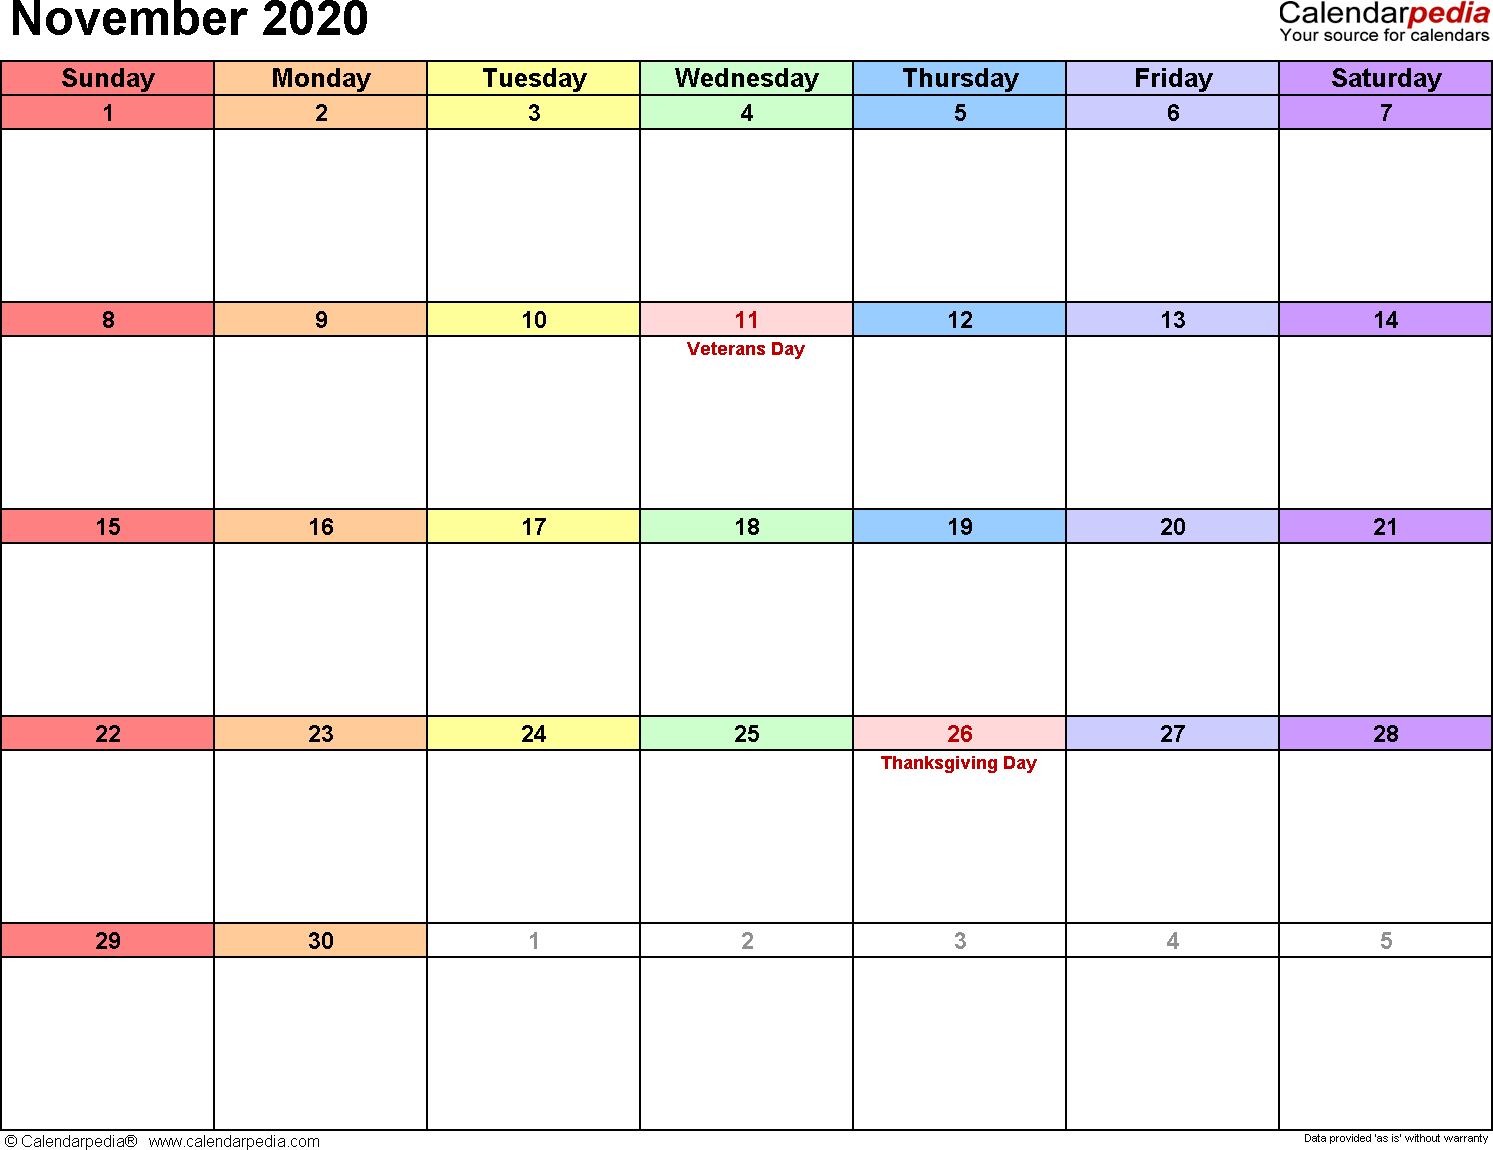 Calendar 2020 November Printable November 2020 Calendars for Word, Excel & PDF